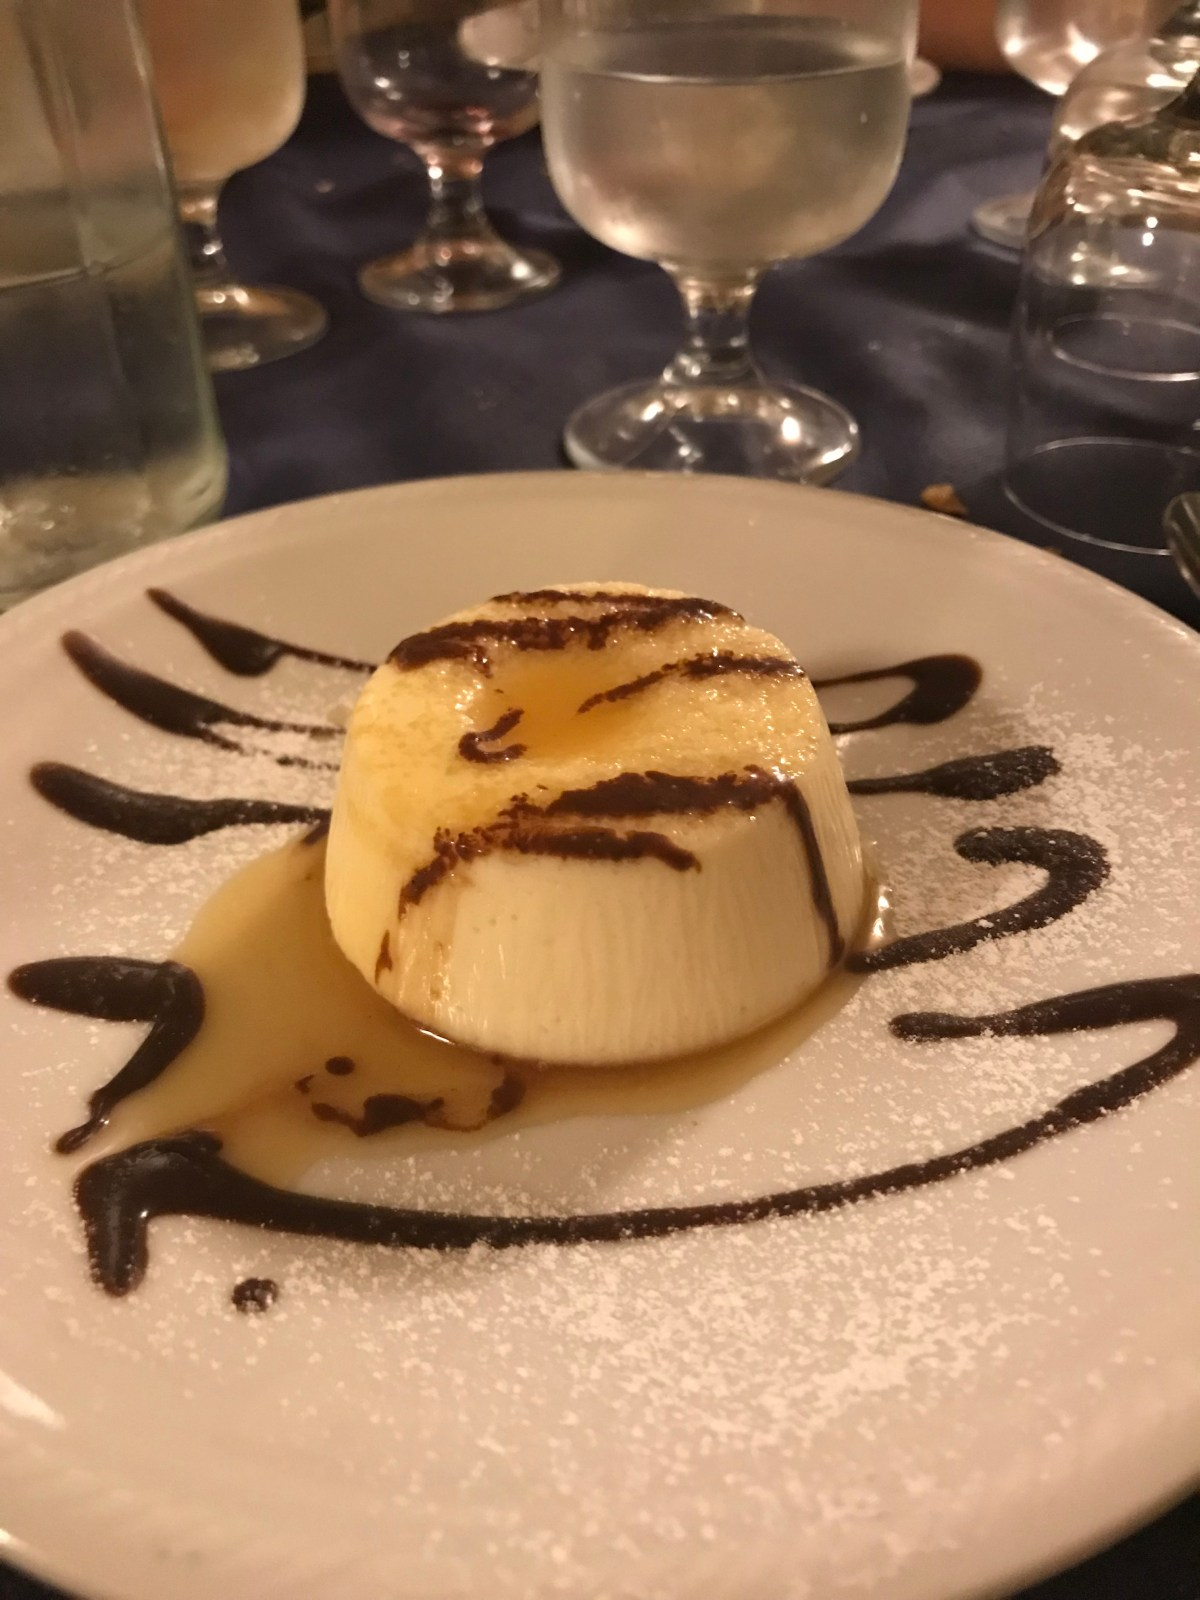 My favorite dessert I had in Orvieto from Trattoria del Moro Anne